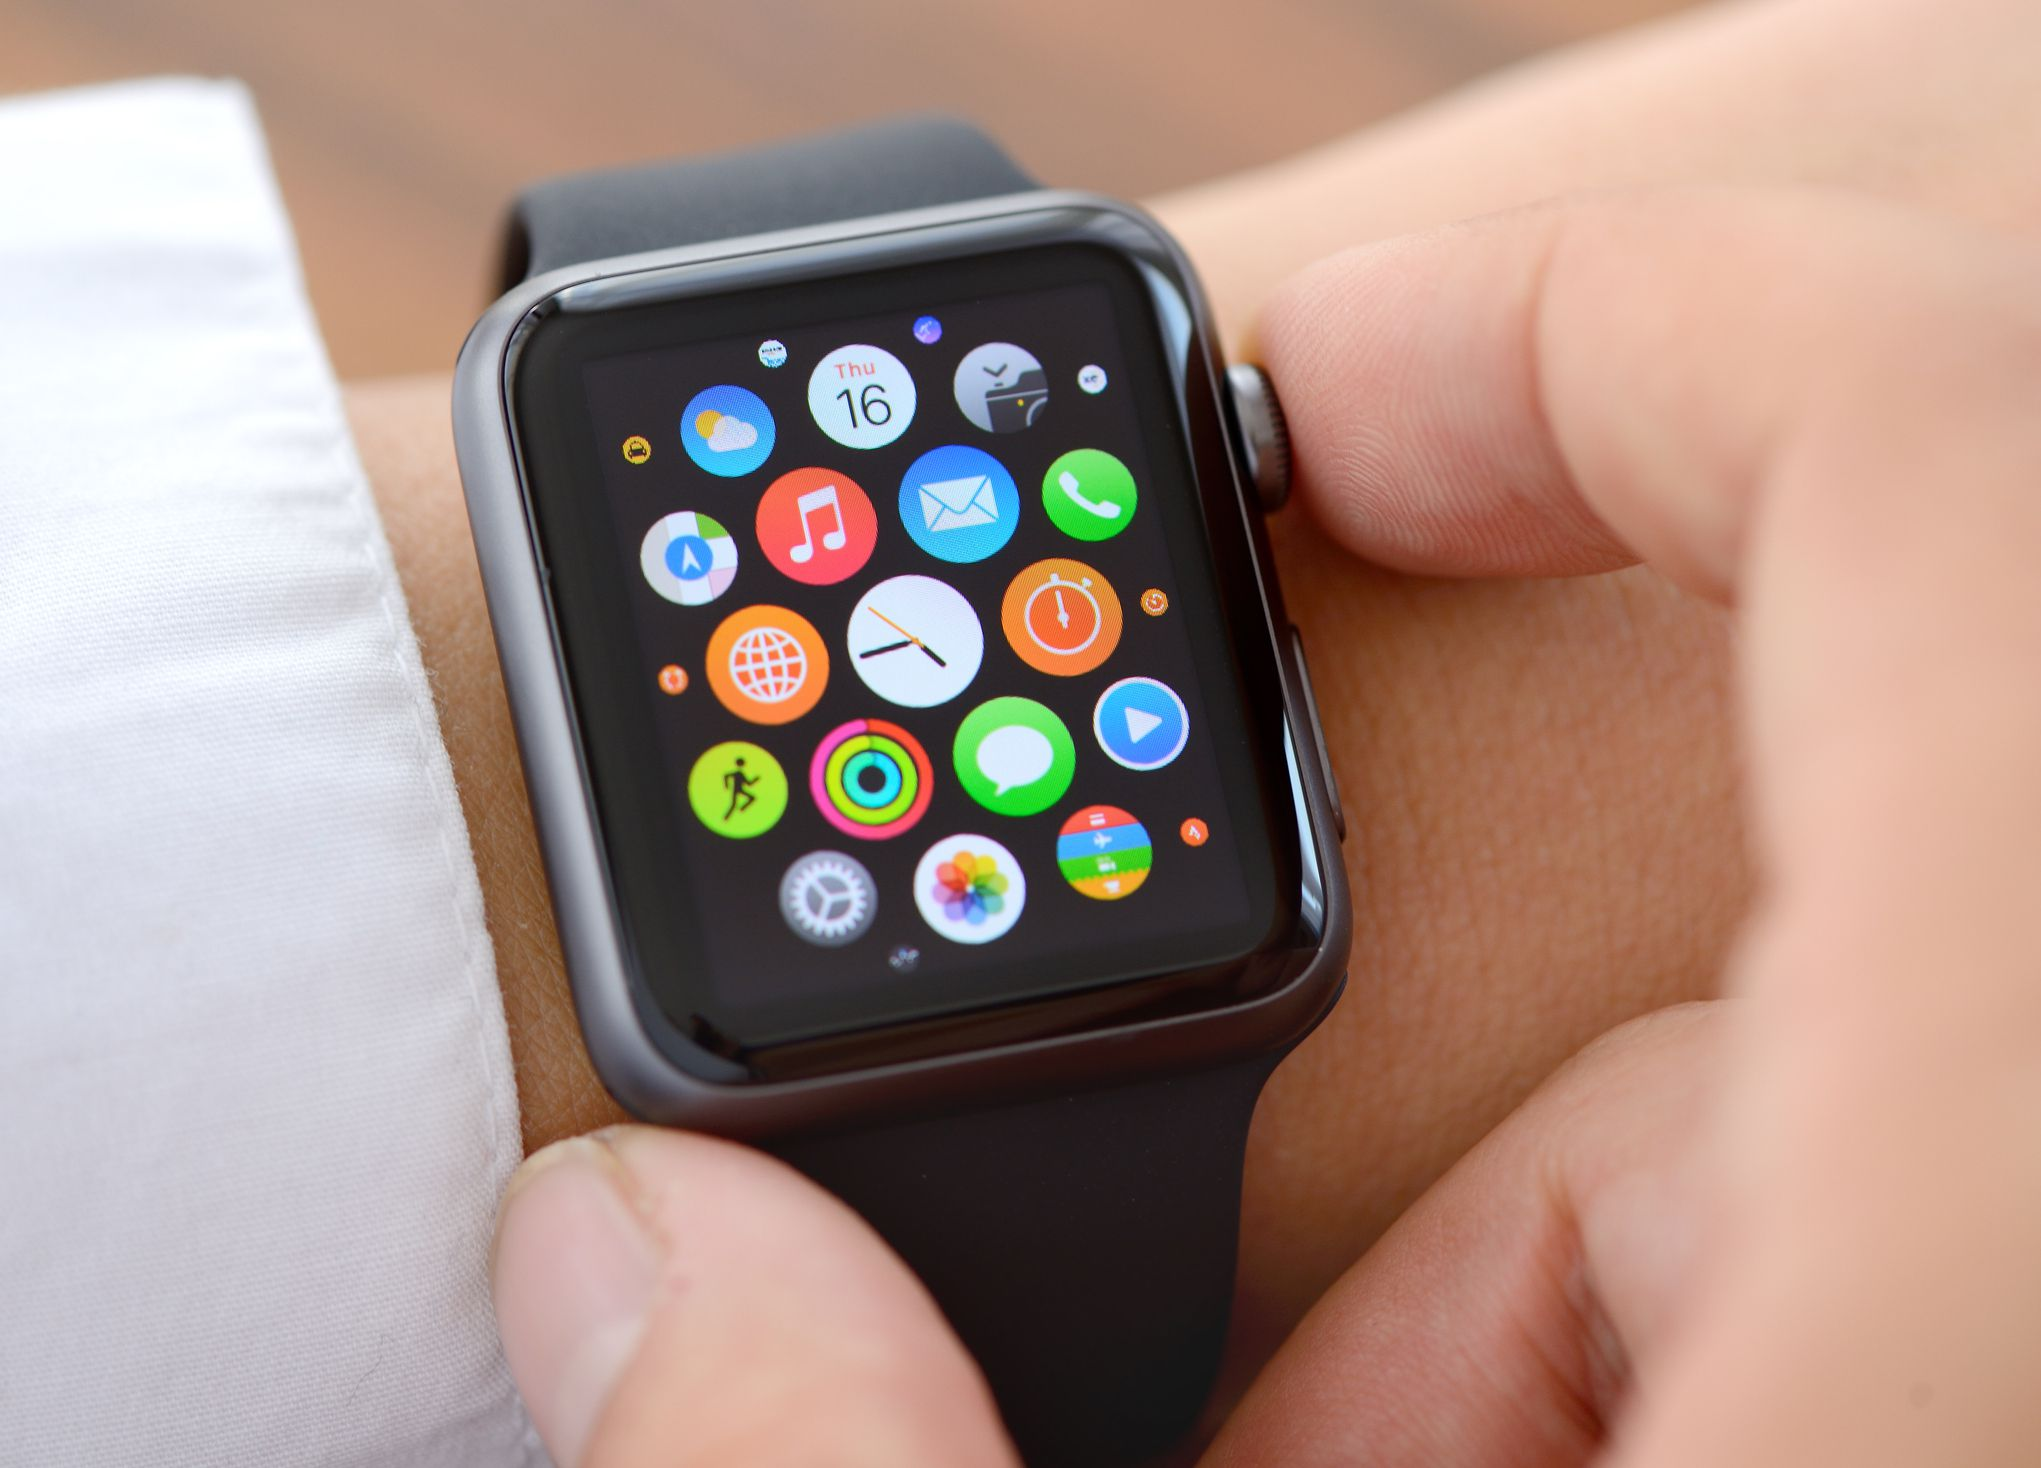 How to Check Battery Life on Apple Watch